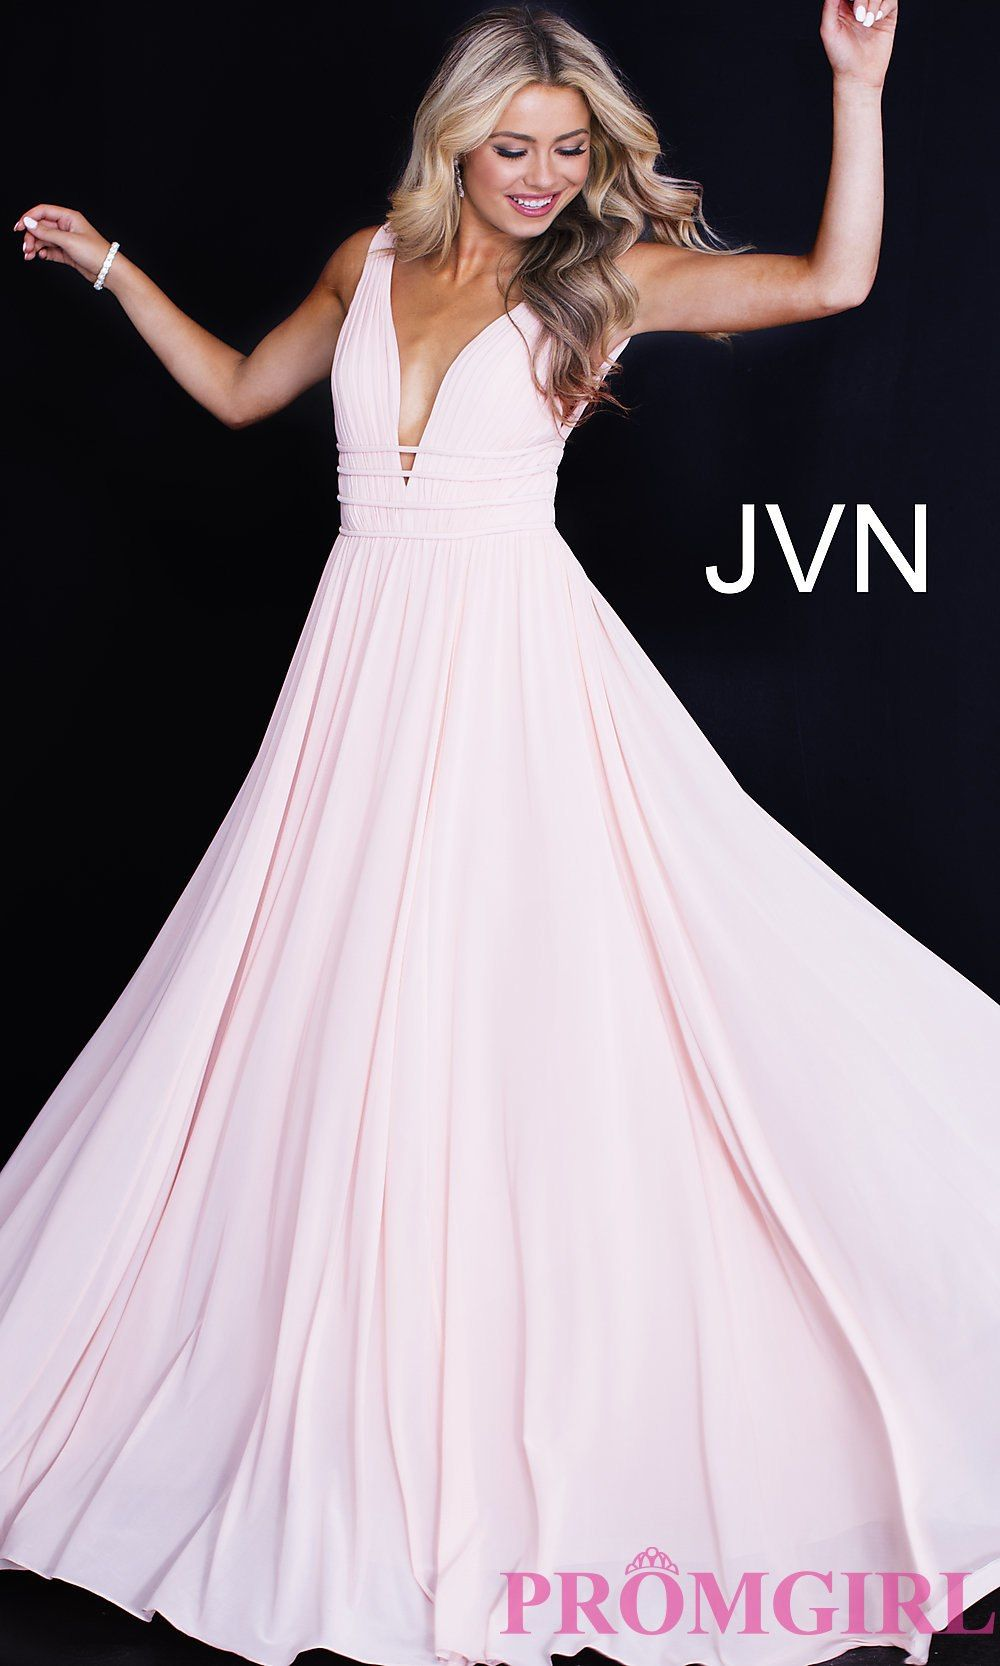 d87cb9e5a3ffd JVN by Jovani Sleeveless Ruched V-Neck Prom Dress | Teaghan Prom ...